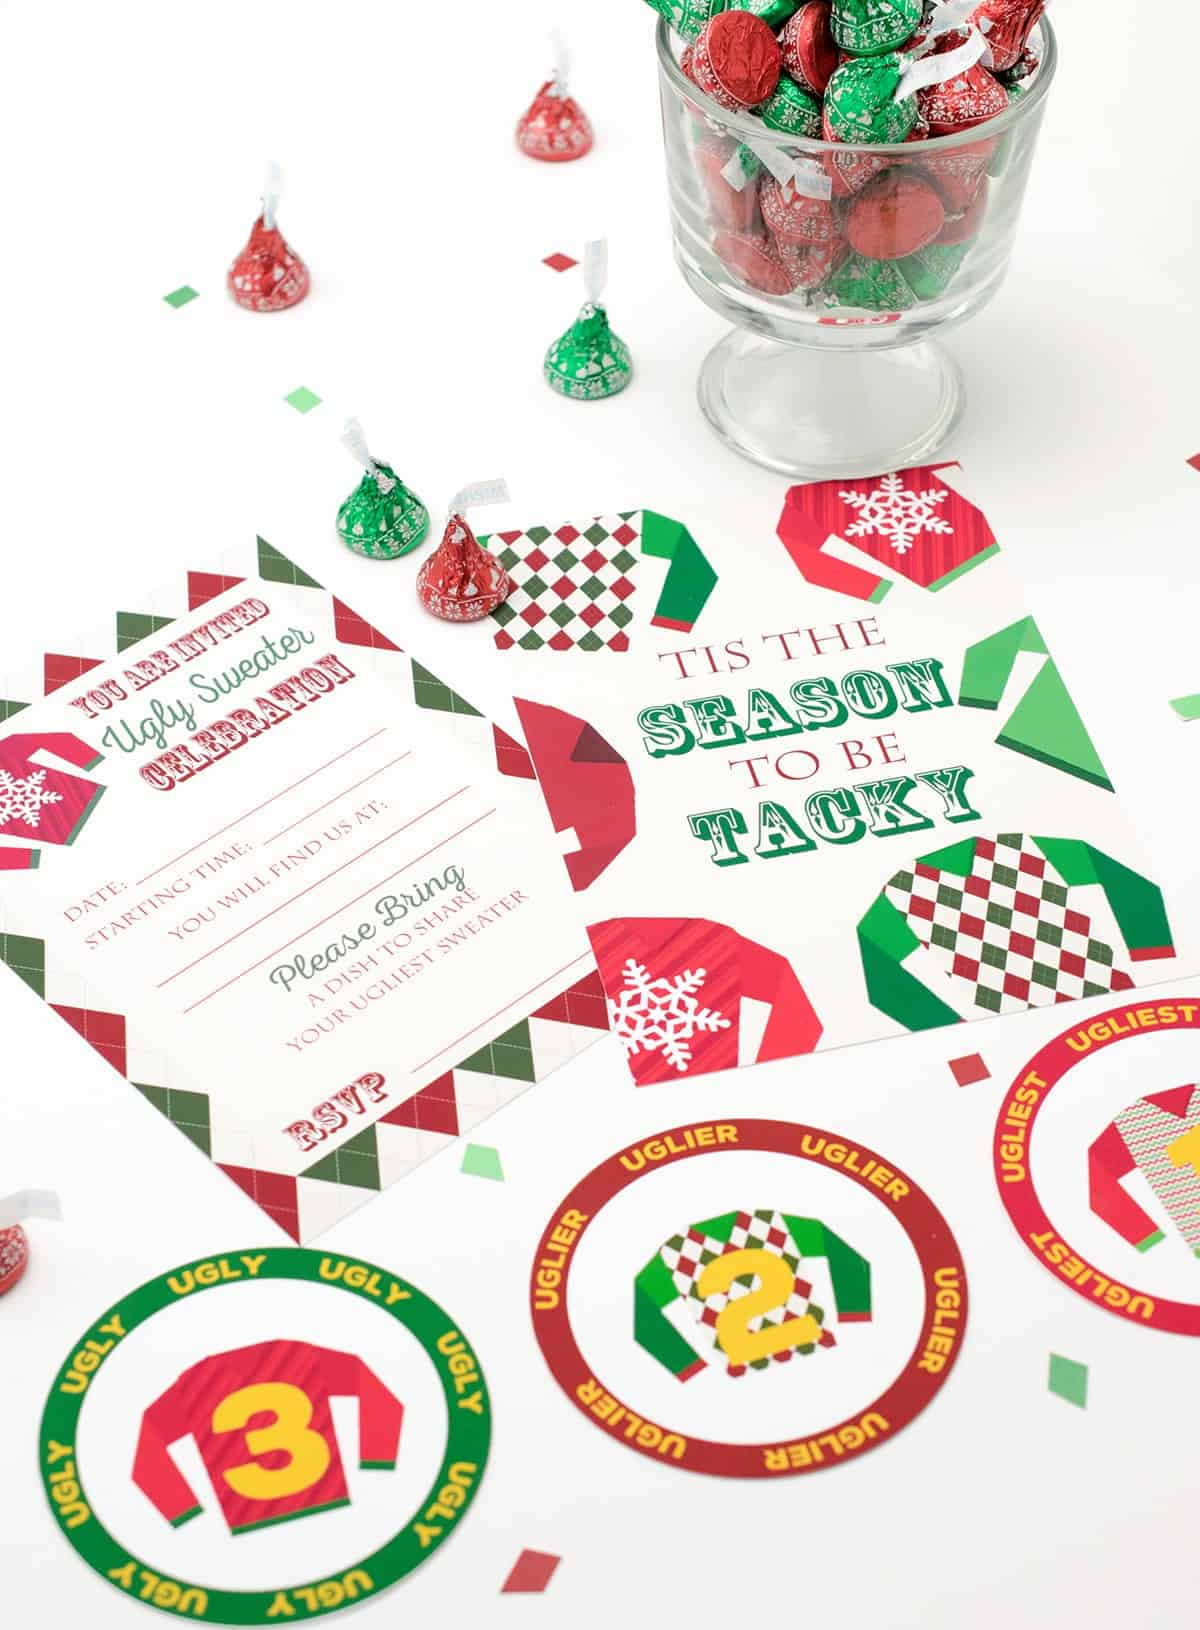 Free printable Christmas invitations for ugly Christmas sweater party next to bowl of Hershey's kisses